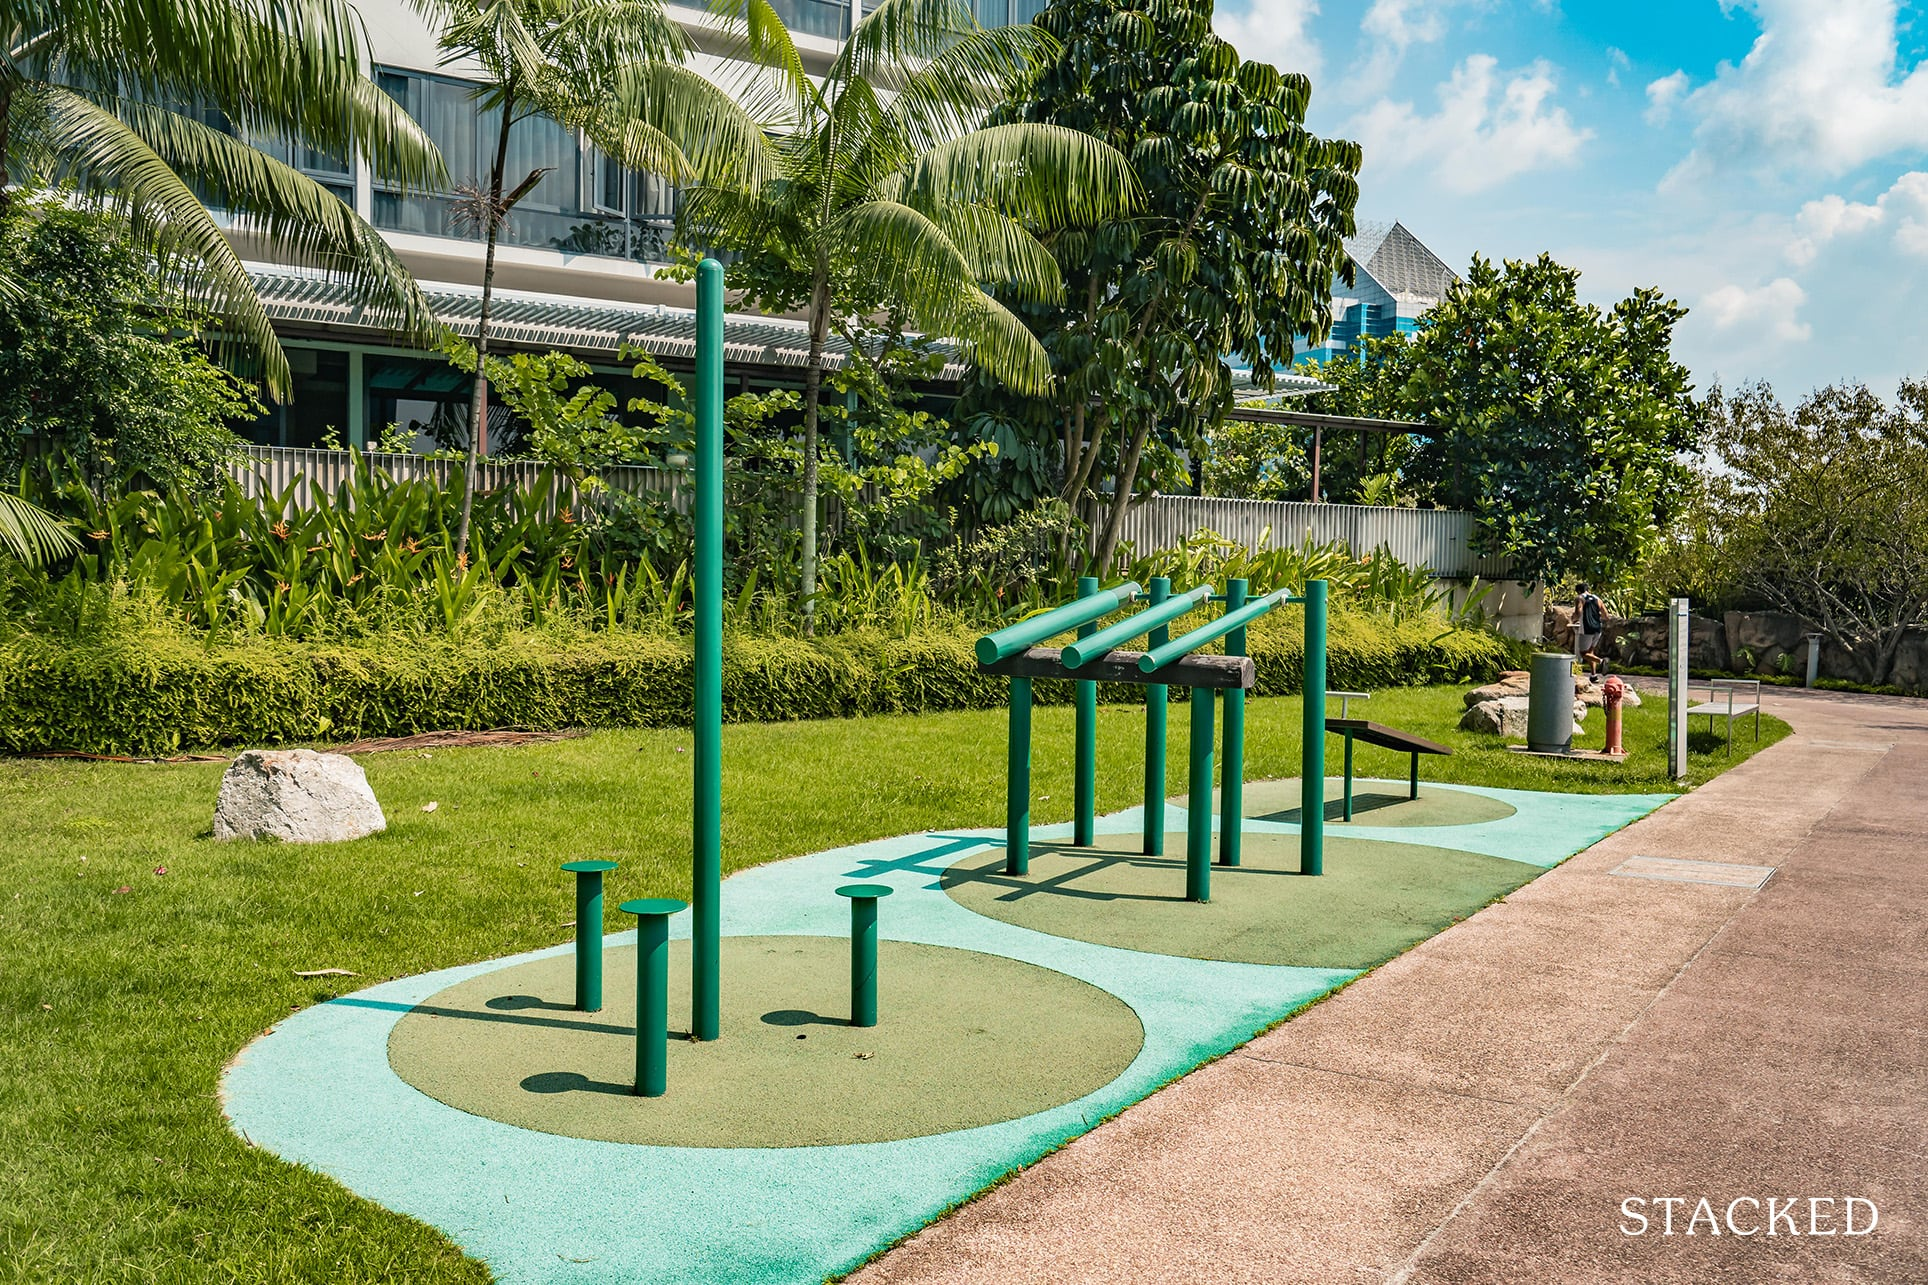 the interlace outdoor fitness stations